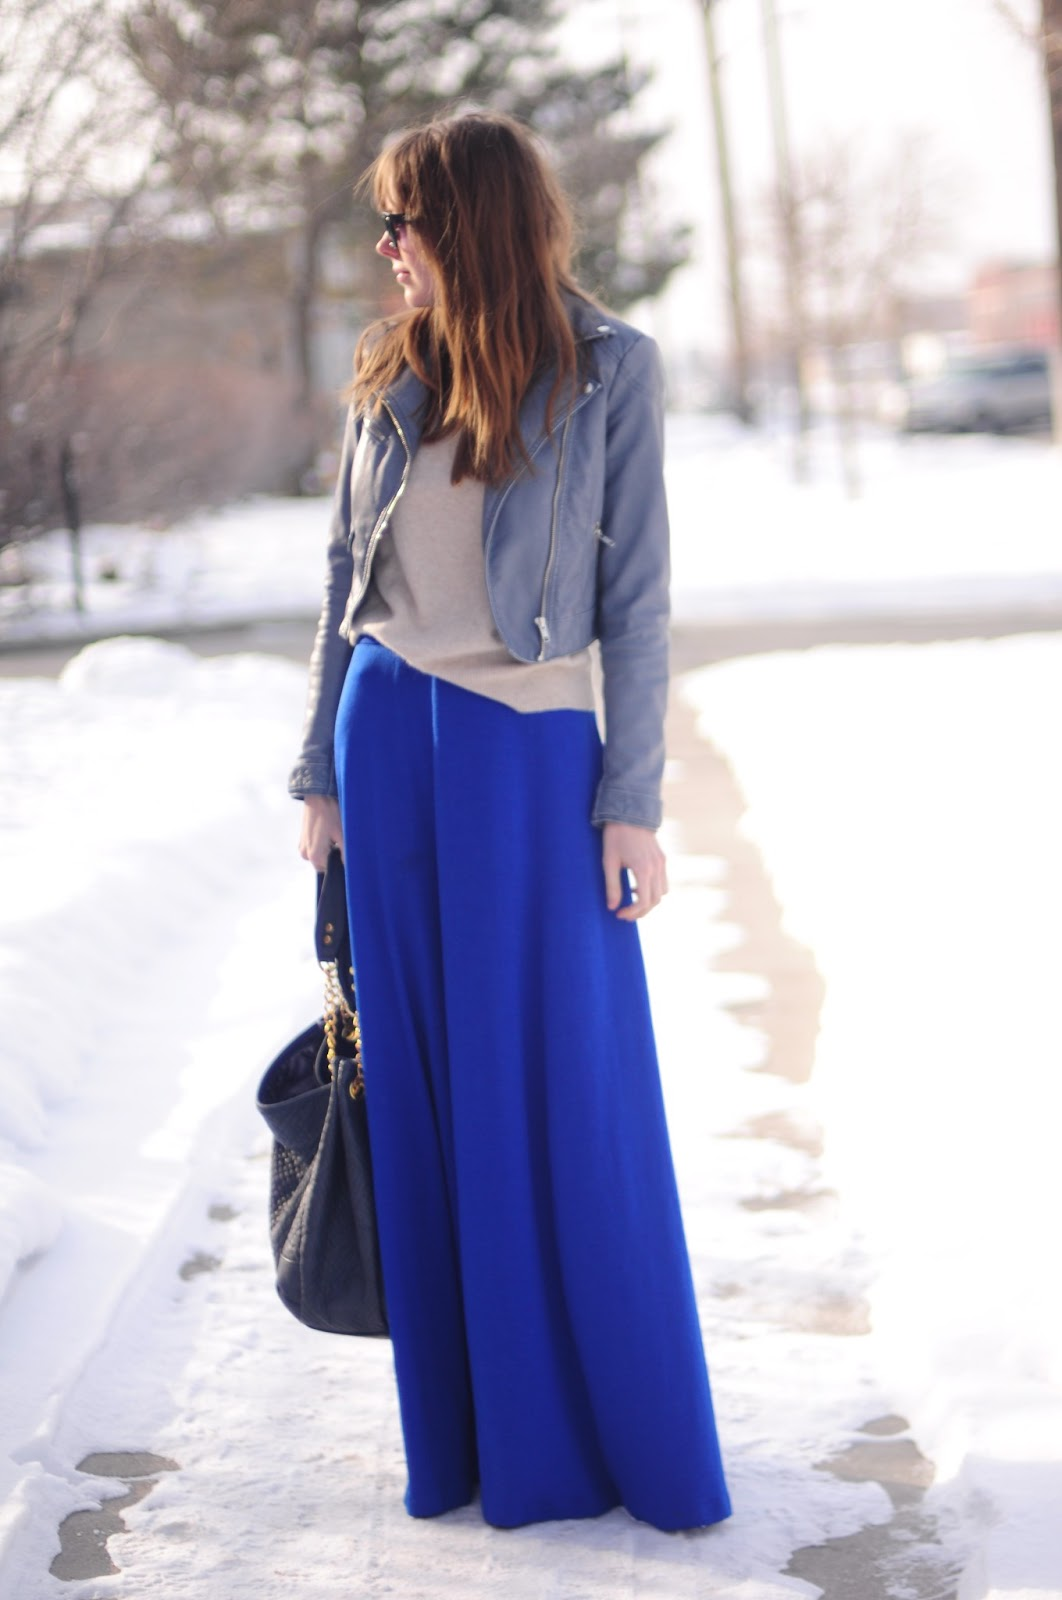 Motorcycle jacket and blue maxi skirt